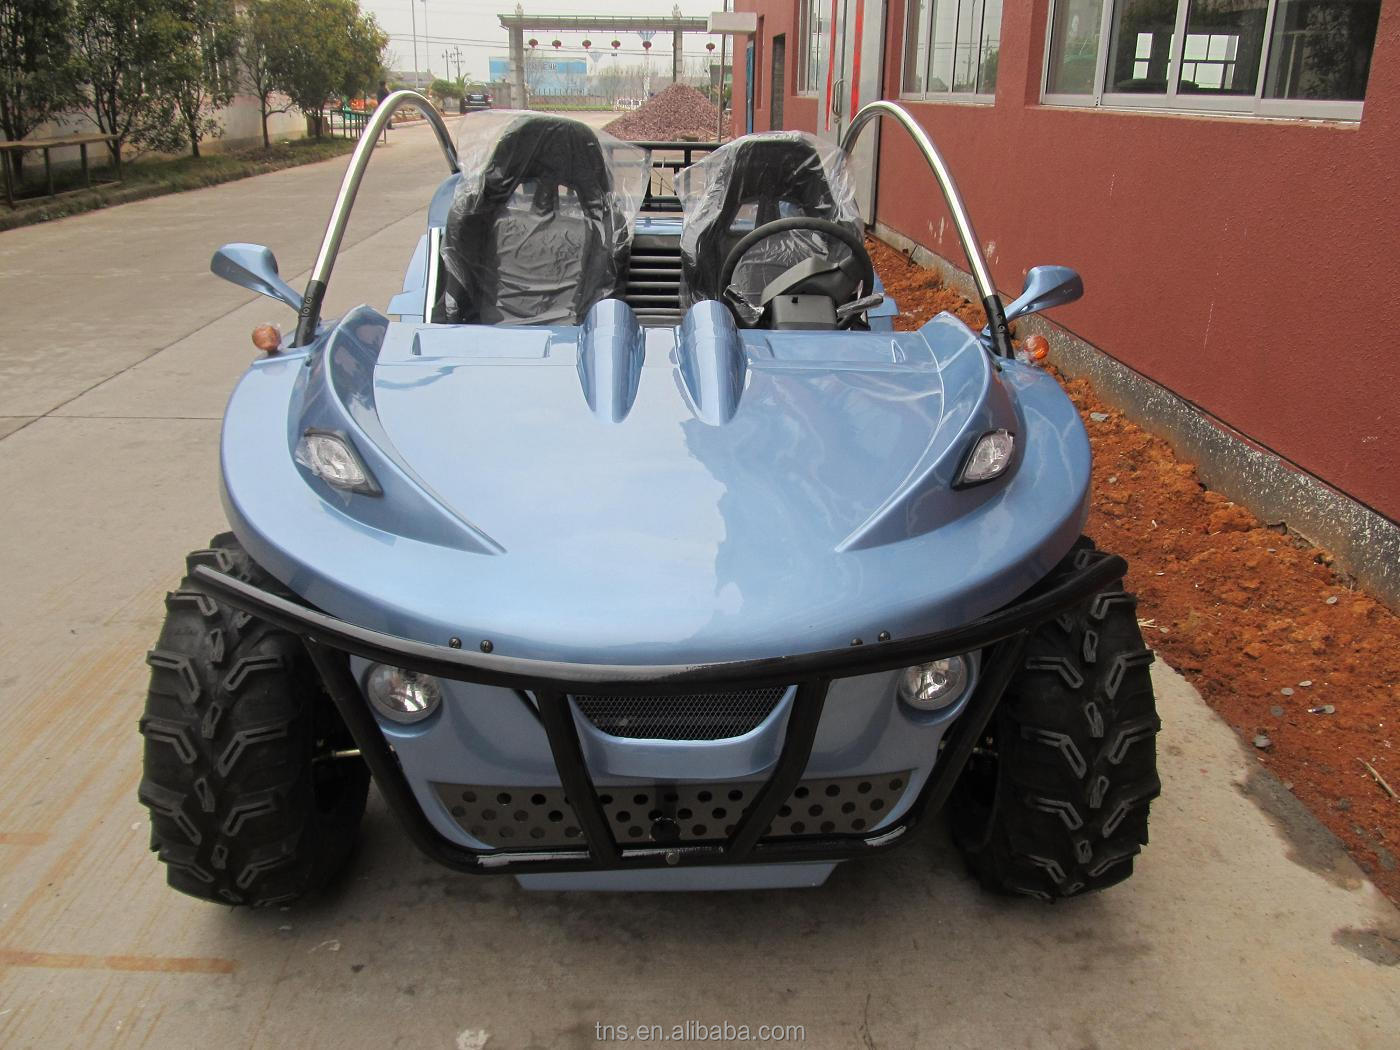 TNS hot selling electric 2 seater go kart